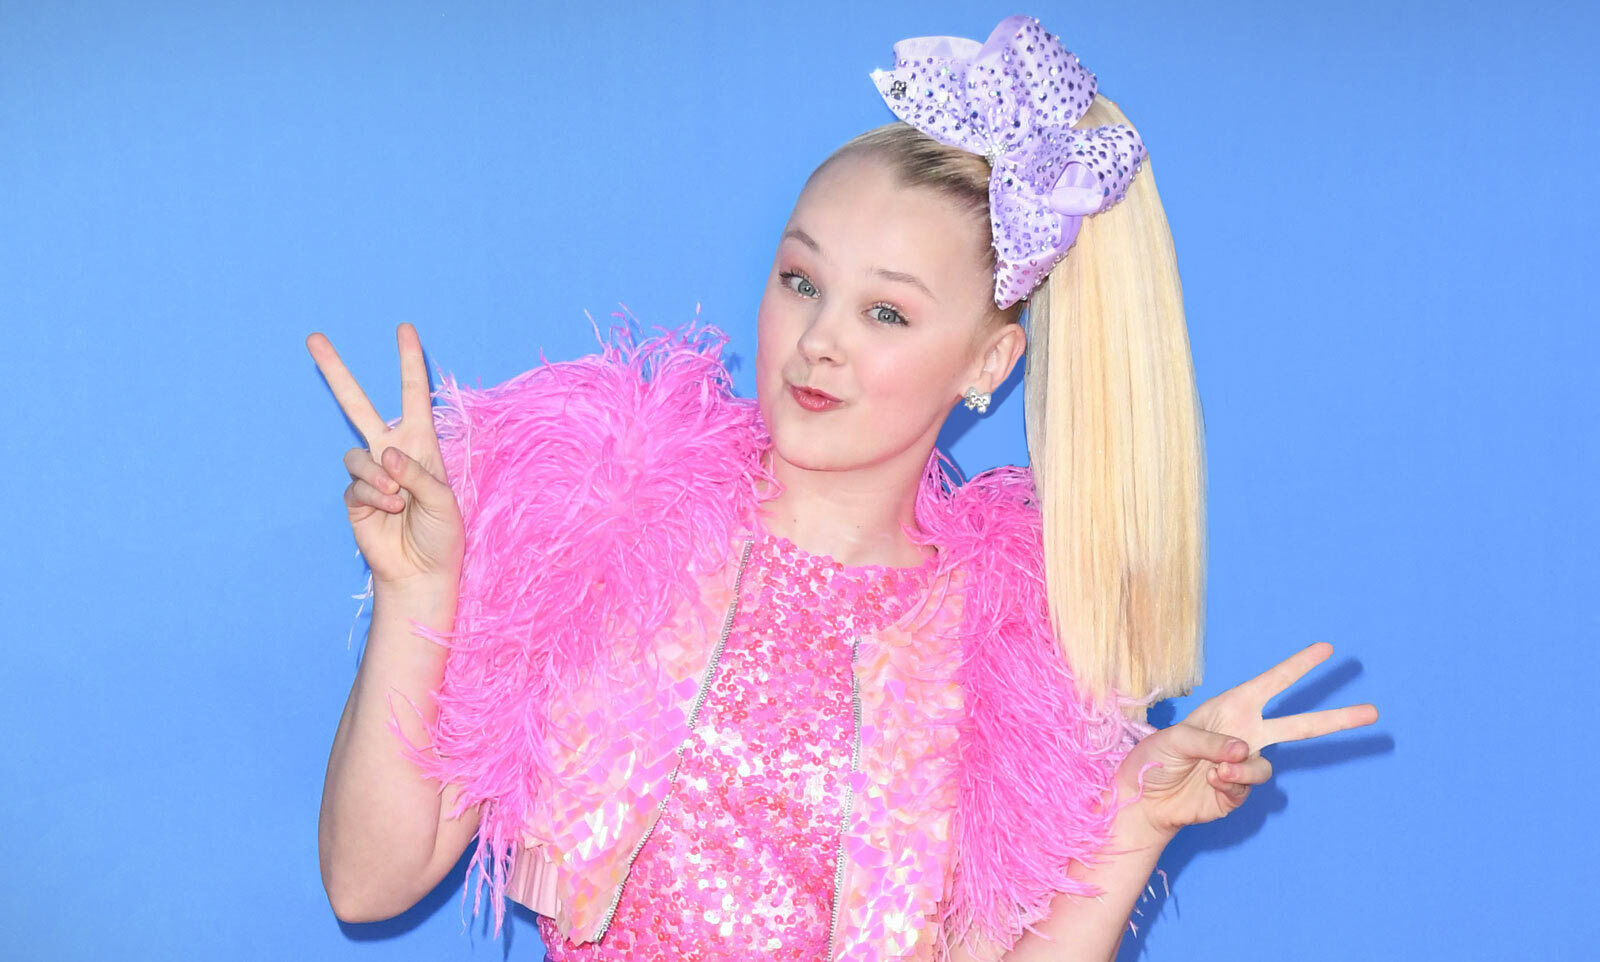 Jojo Siwa Vip Packages Tickets 9 14 2019 At At Amp T Center